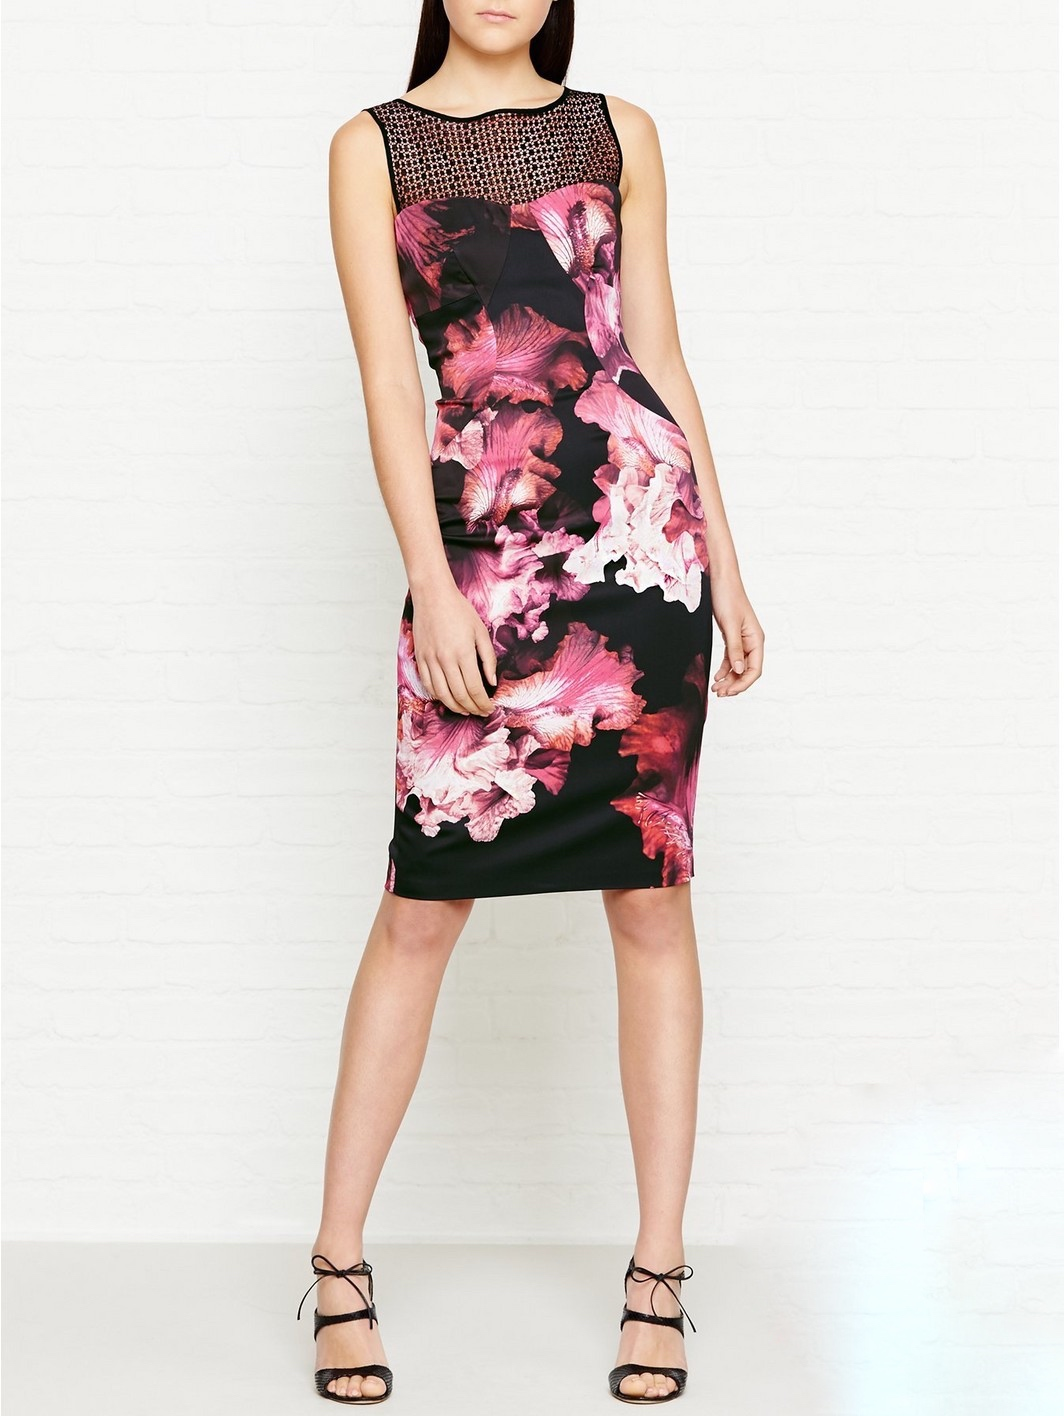 f7cf00b76f7 DZ096 Karen Millen Midnight Orchid Floral Print Dress Multi